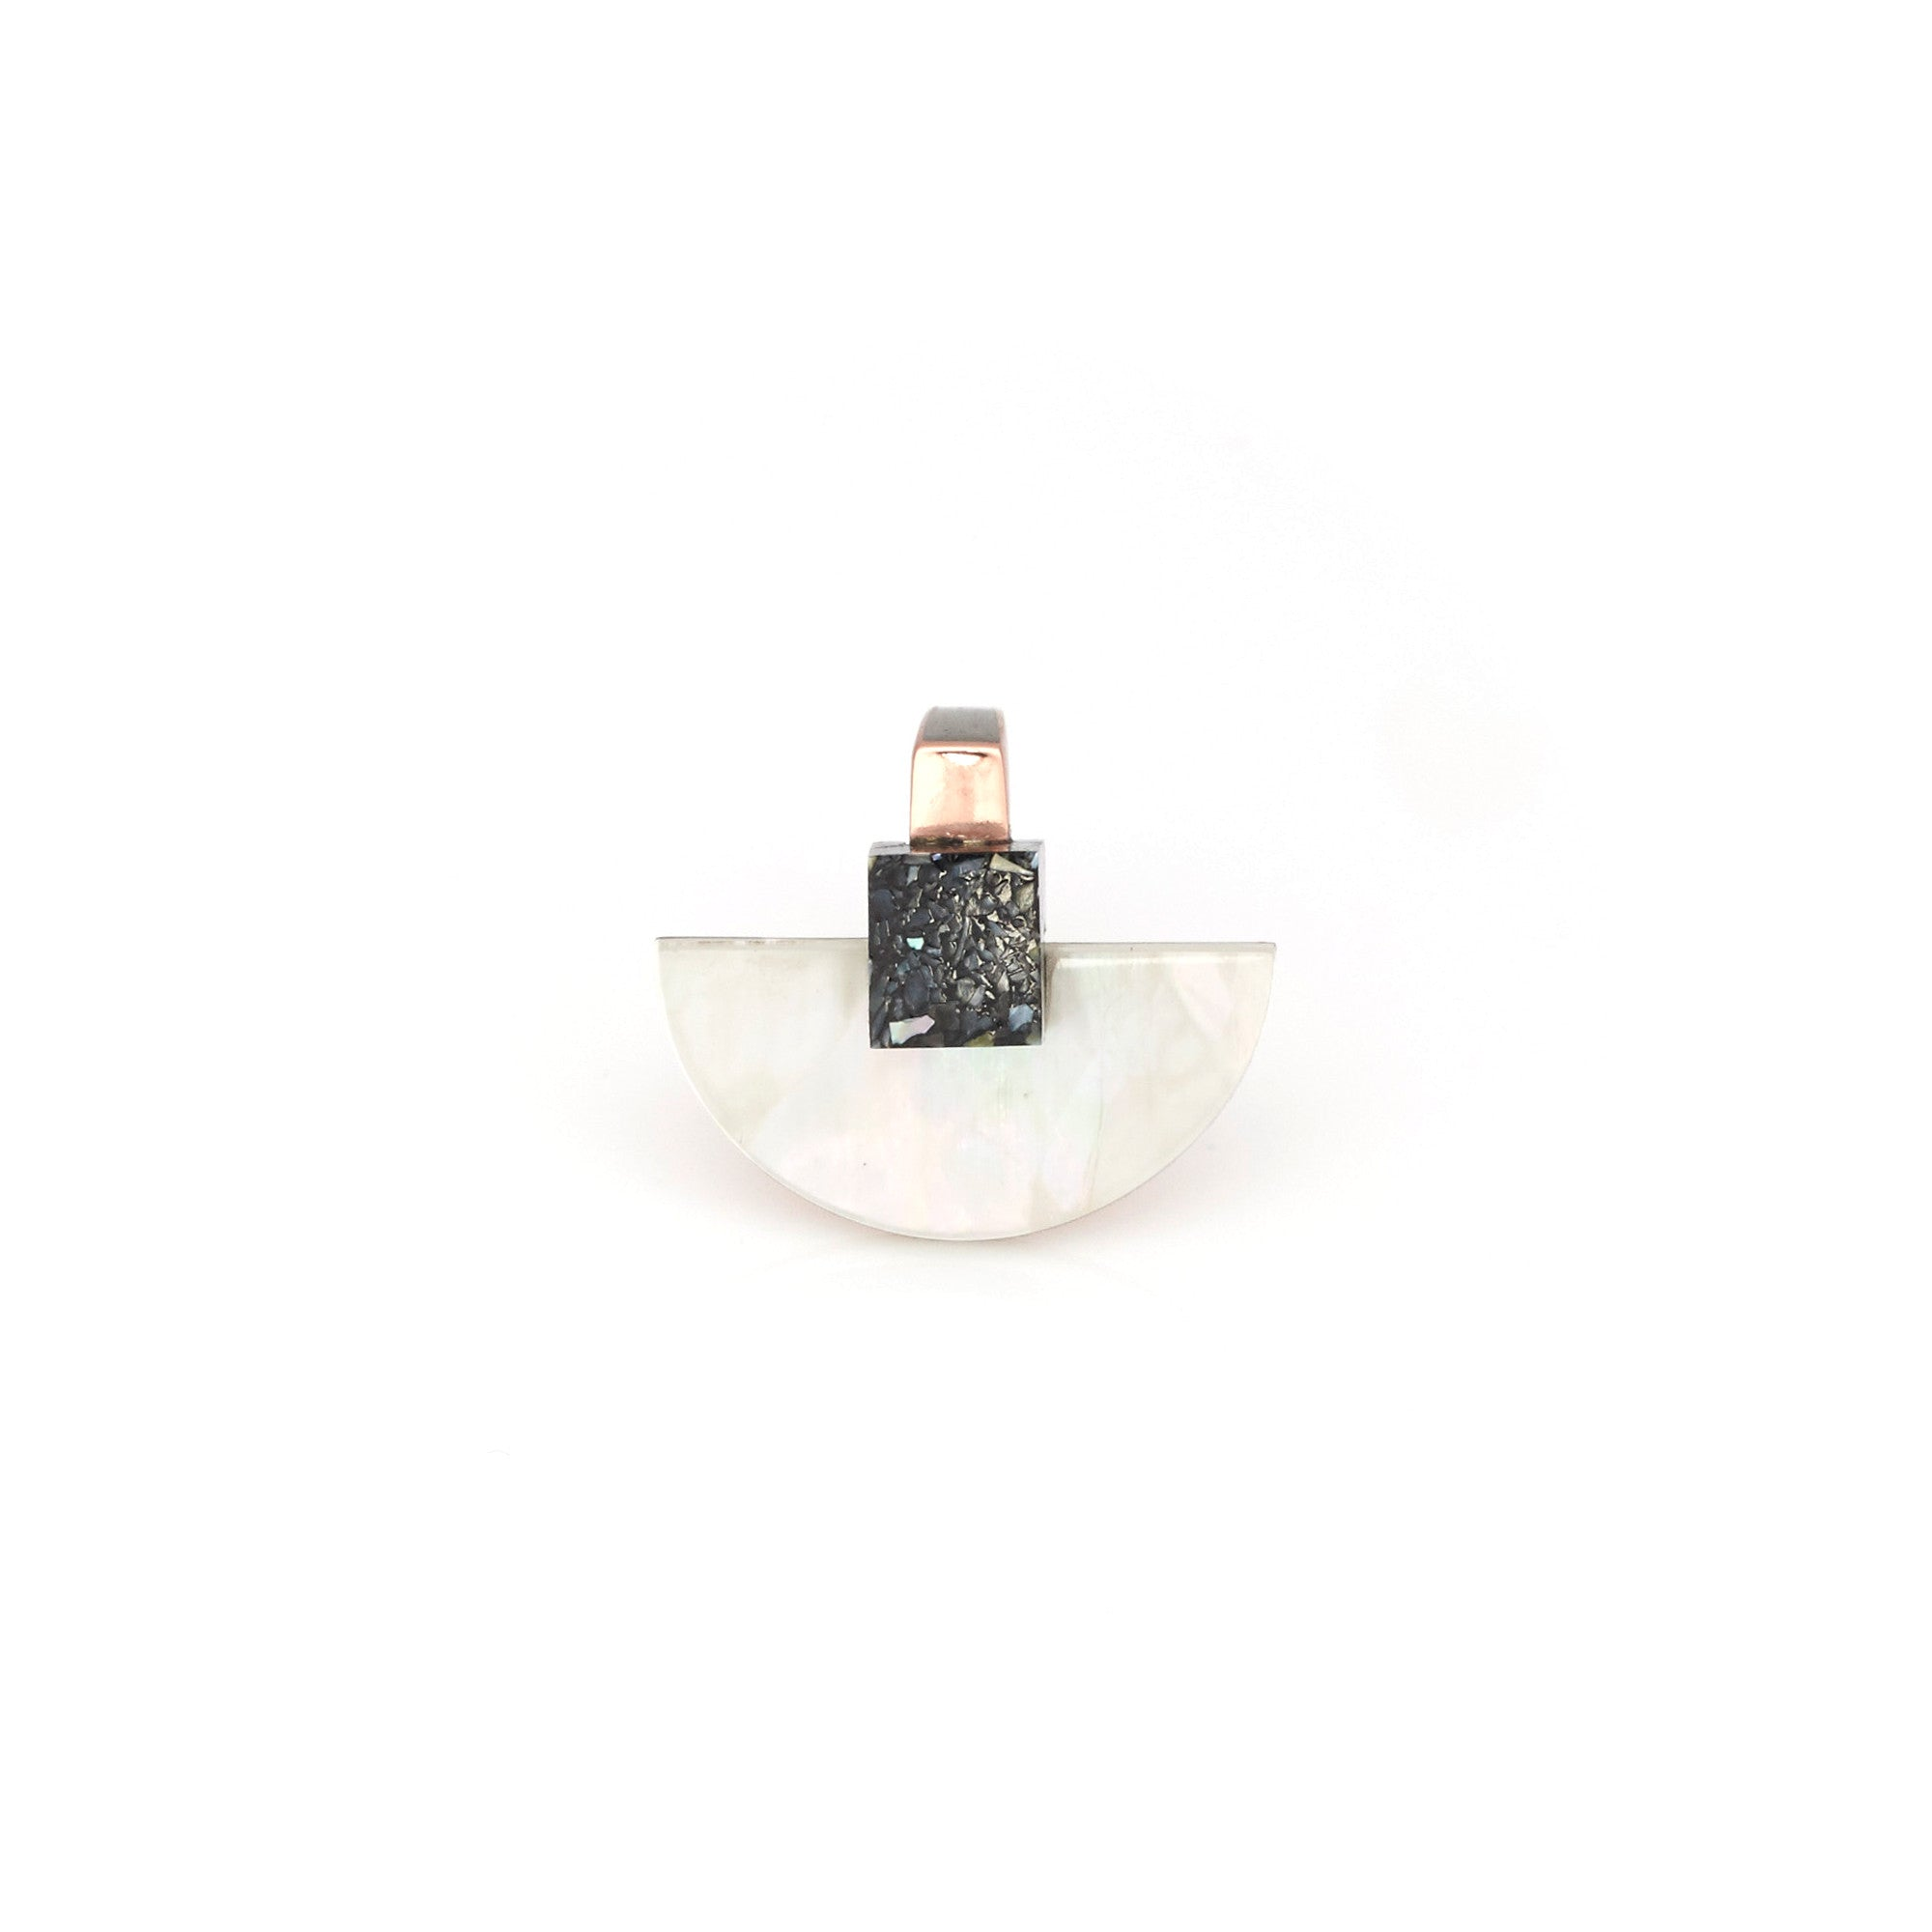 Fan ring featuring genuine mother of pearl, polished brass & textured resin.